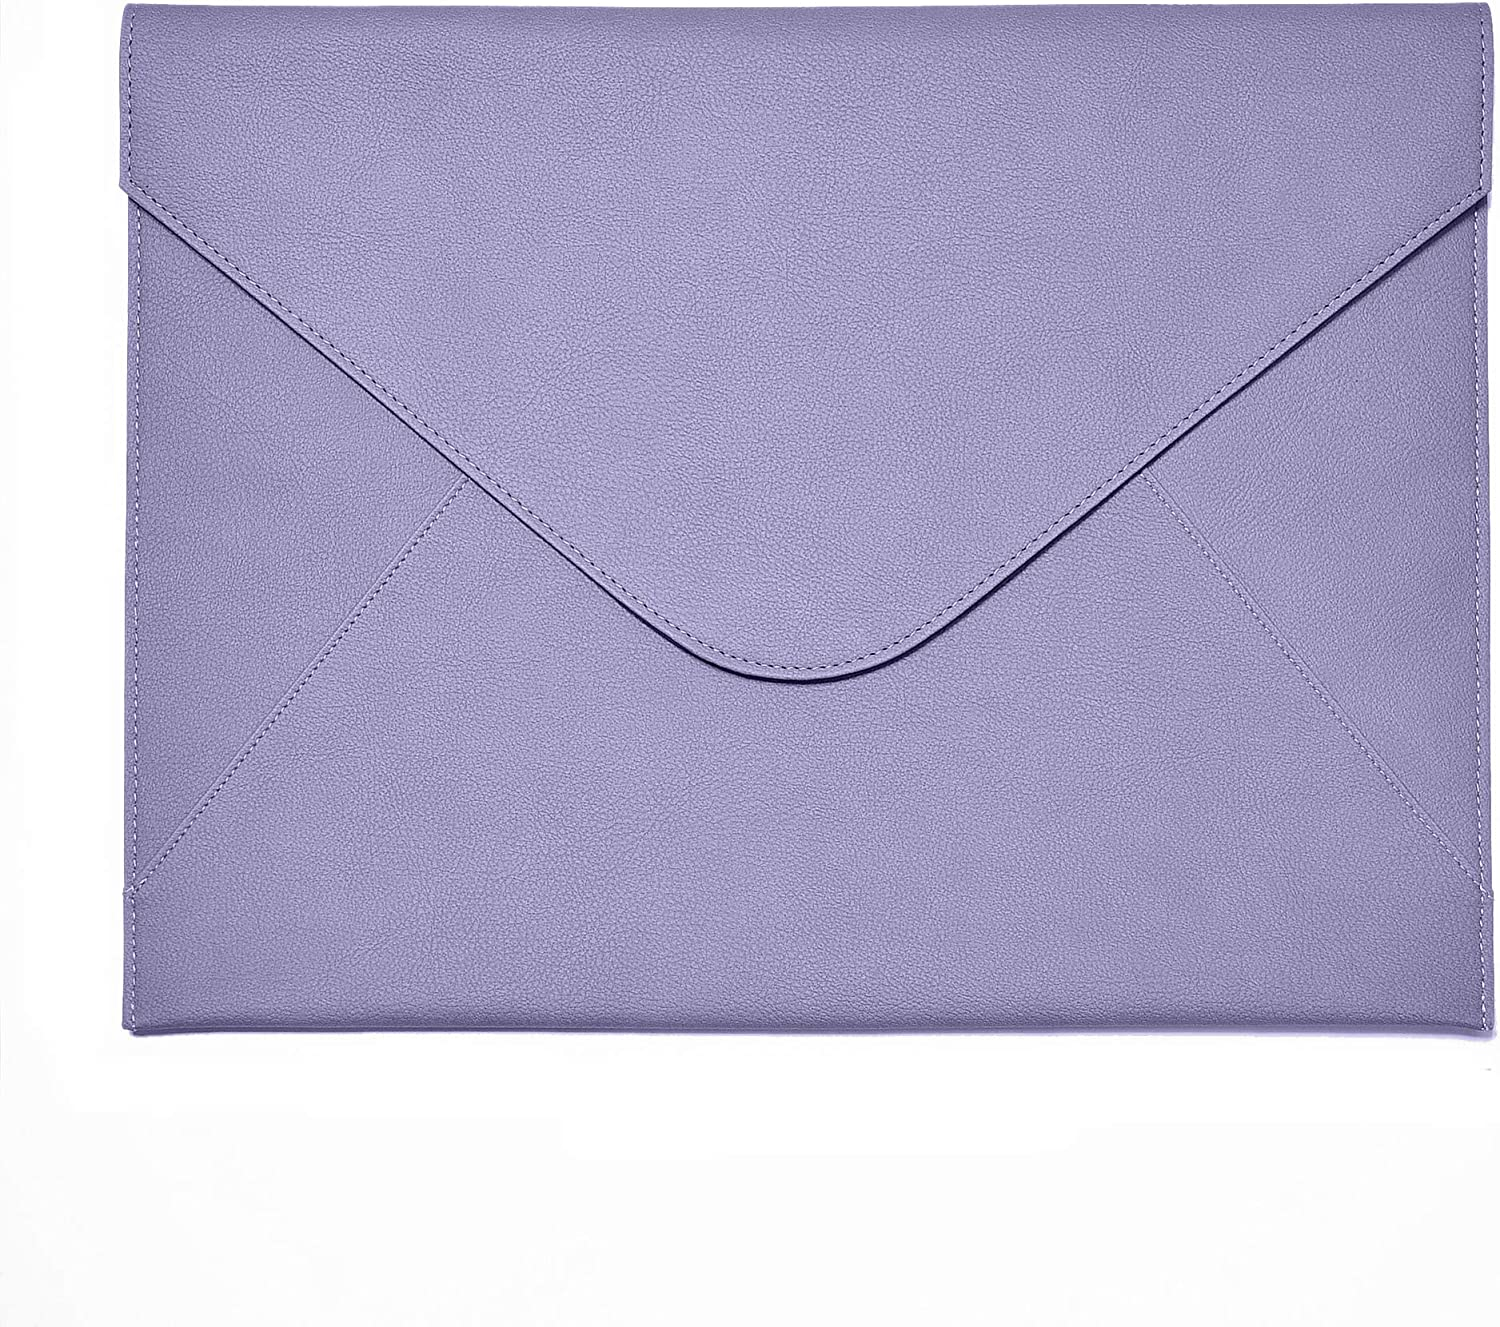 Bellagenda 13.5 inch Laptop Sleeve | Sleeve for Old MacBook Pro | Surface Laptop | Document Envelope | Fits for 13.5 to 14 inch Laptop | Water Resistant | Pen Holder (13.5-14 inch, Lavender)